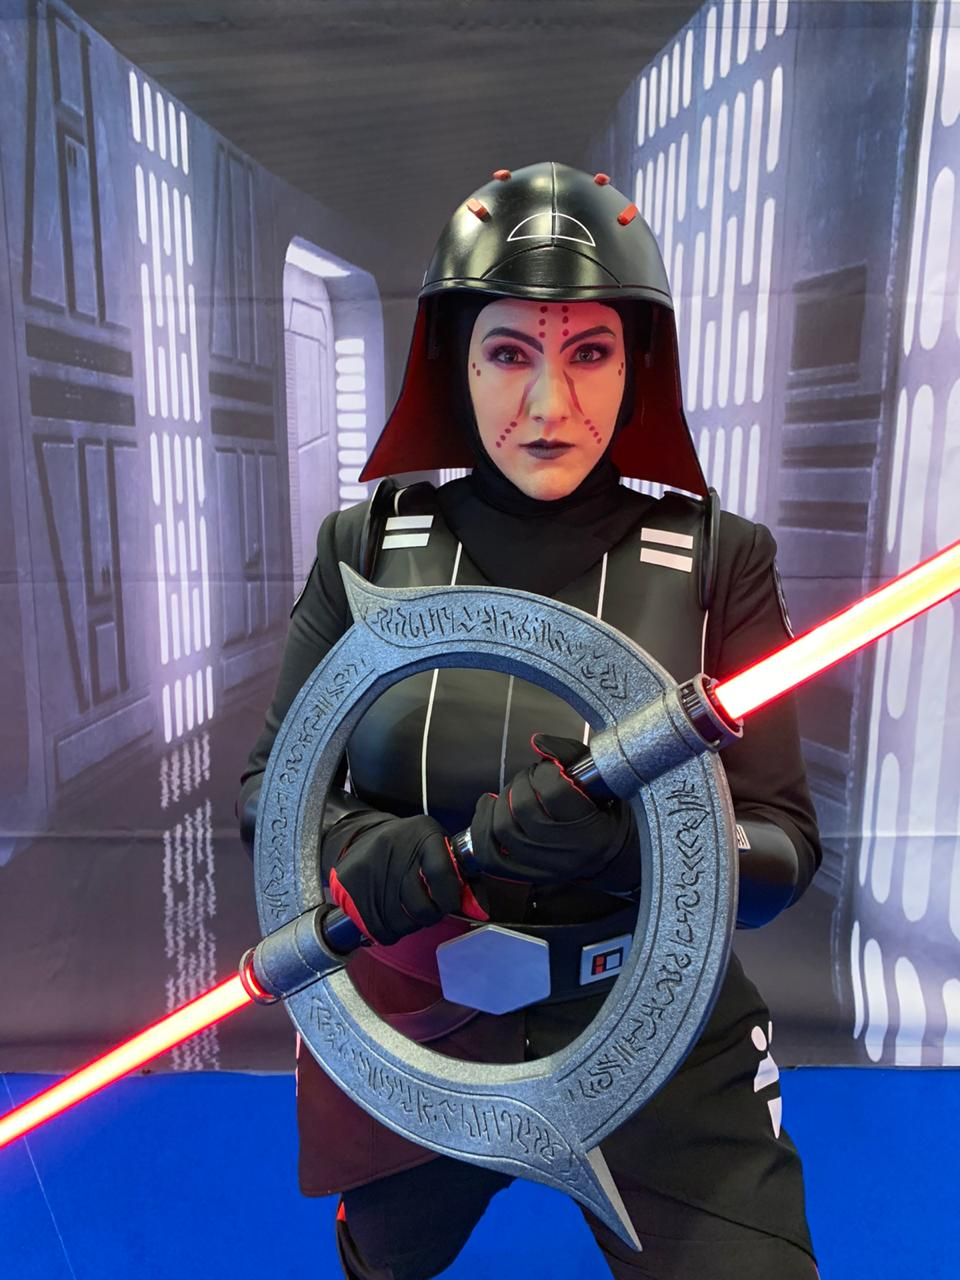 Star Wars and Cosplay: Strong Women Needed